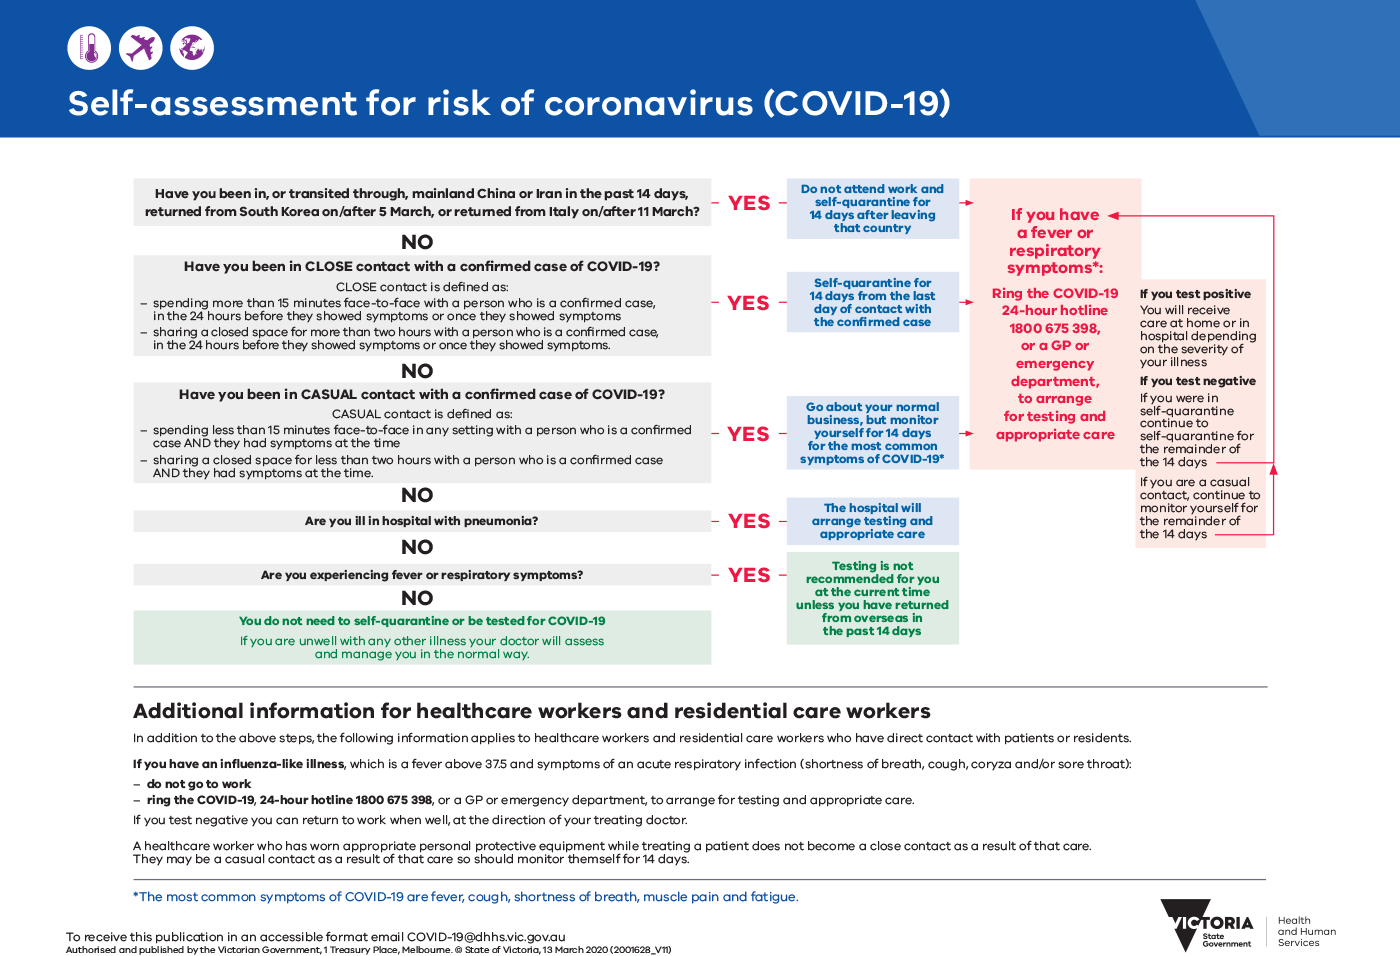 2001628 COVID 19 Self assessment for risk